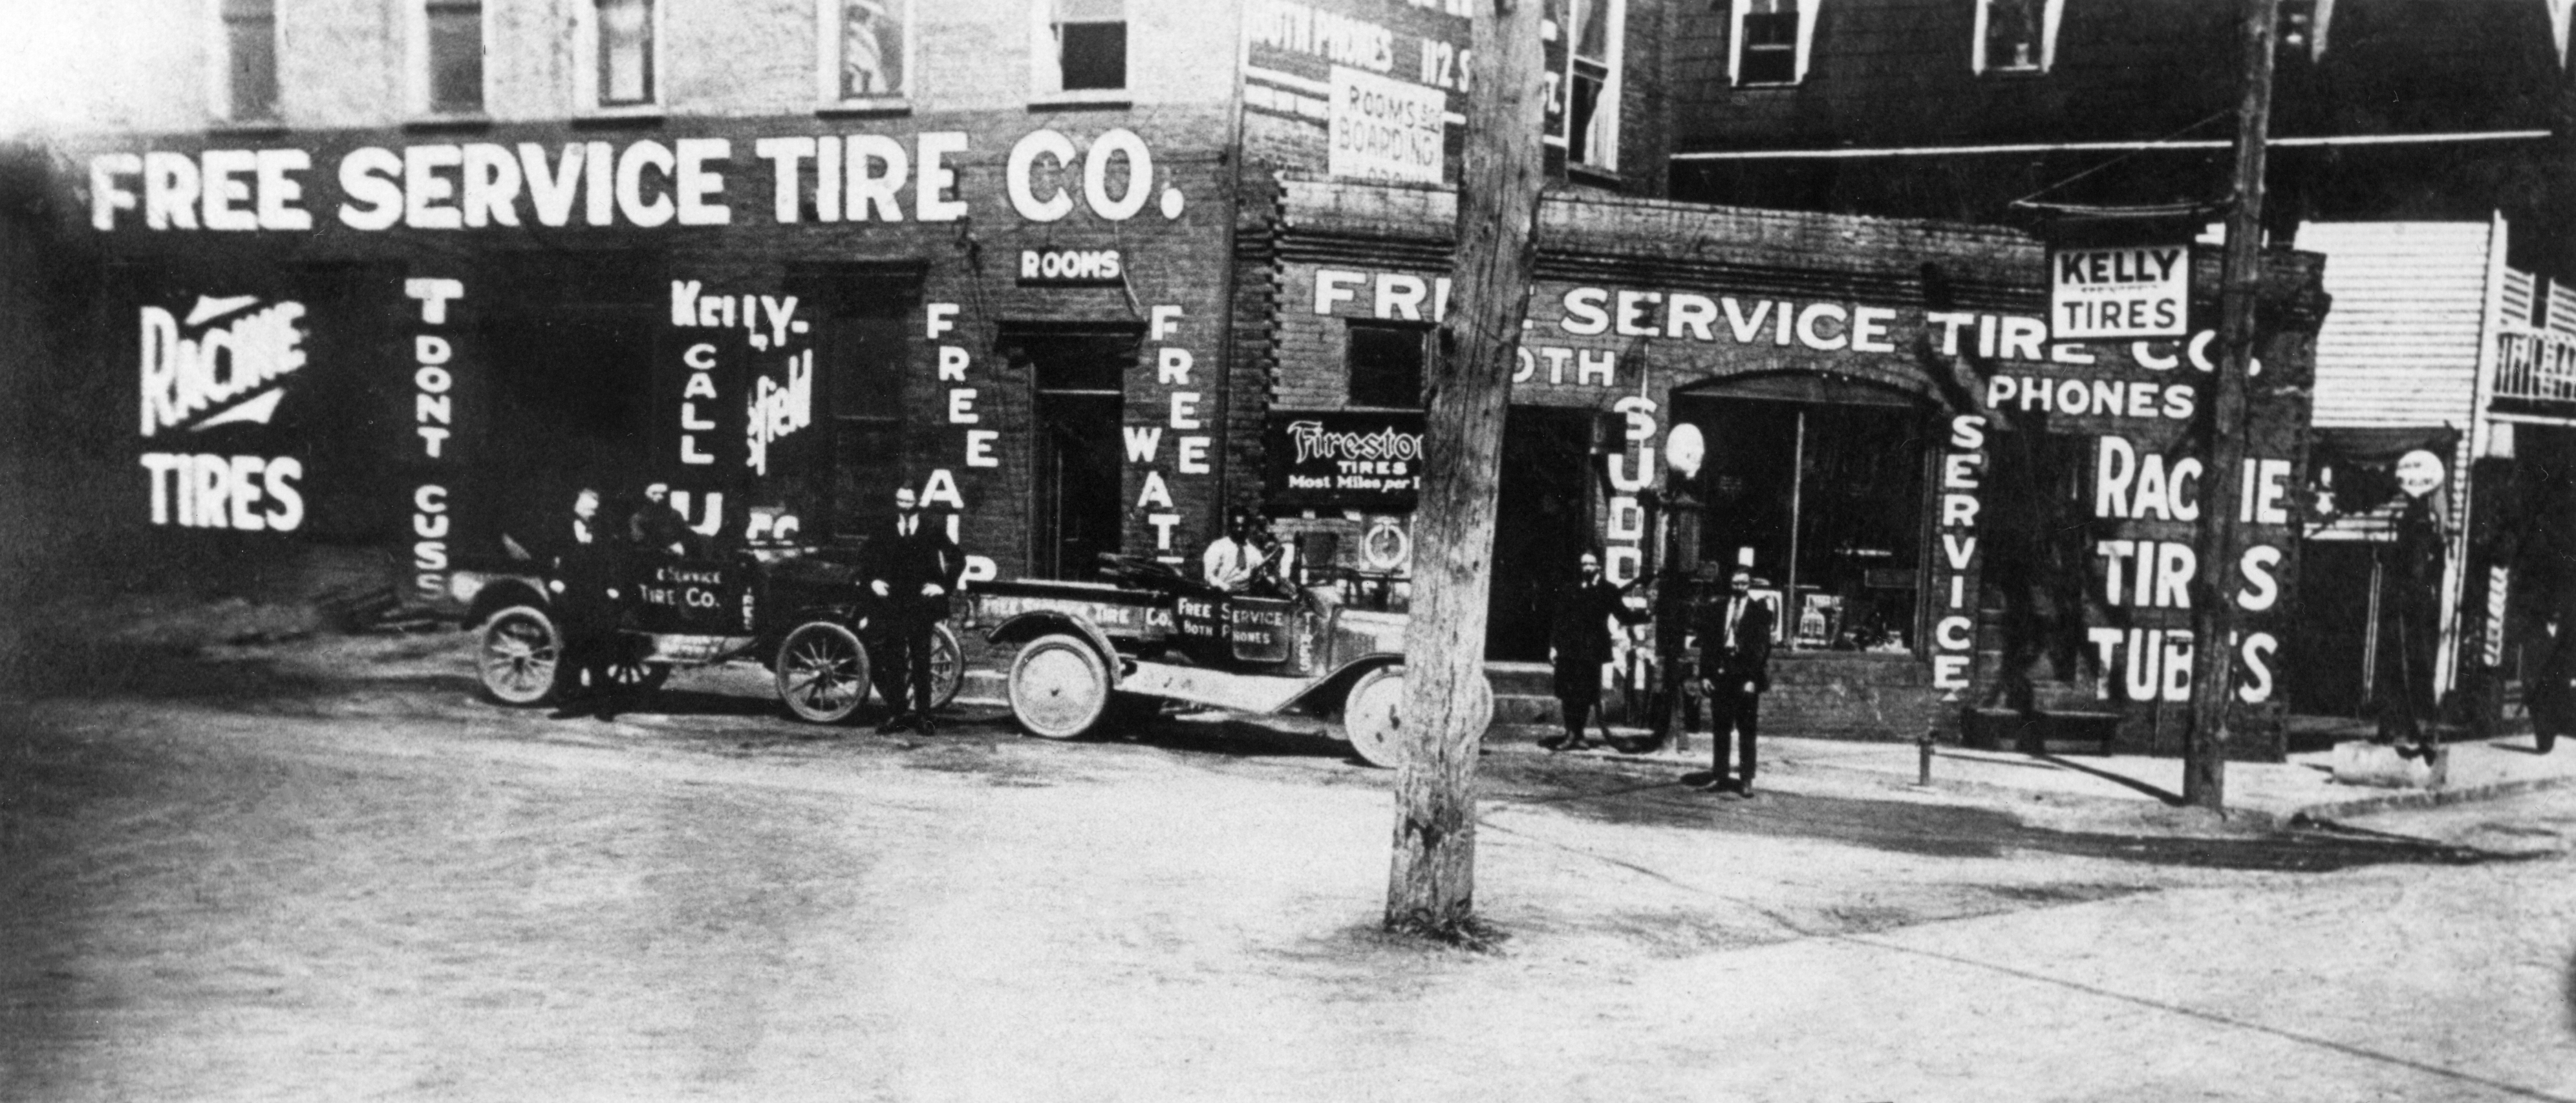 Free Service Tire Co.: Secrets to 99 Years of Success